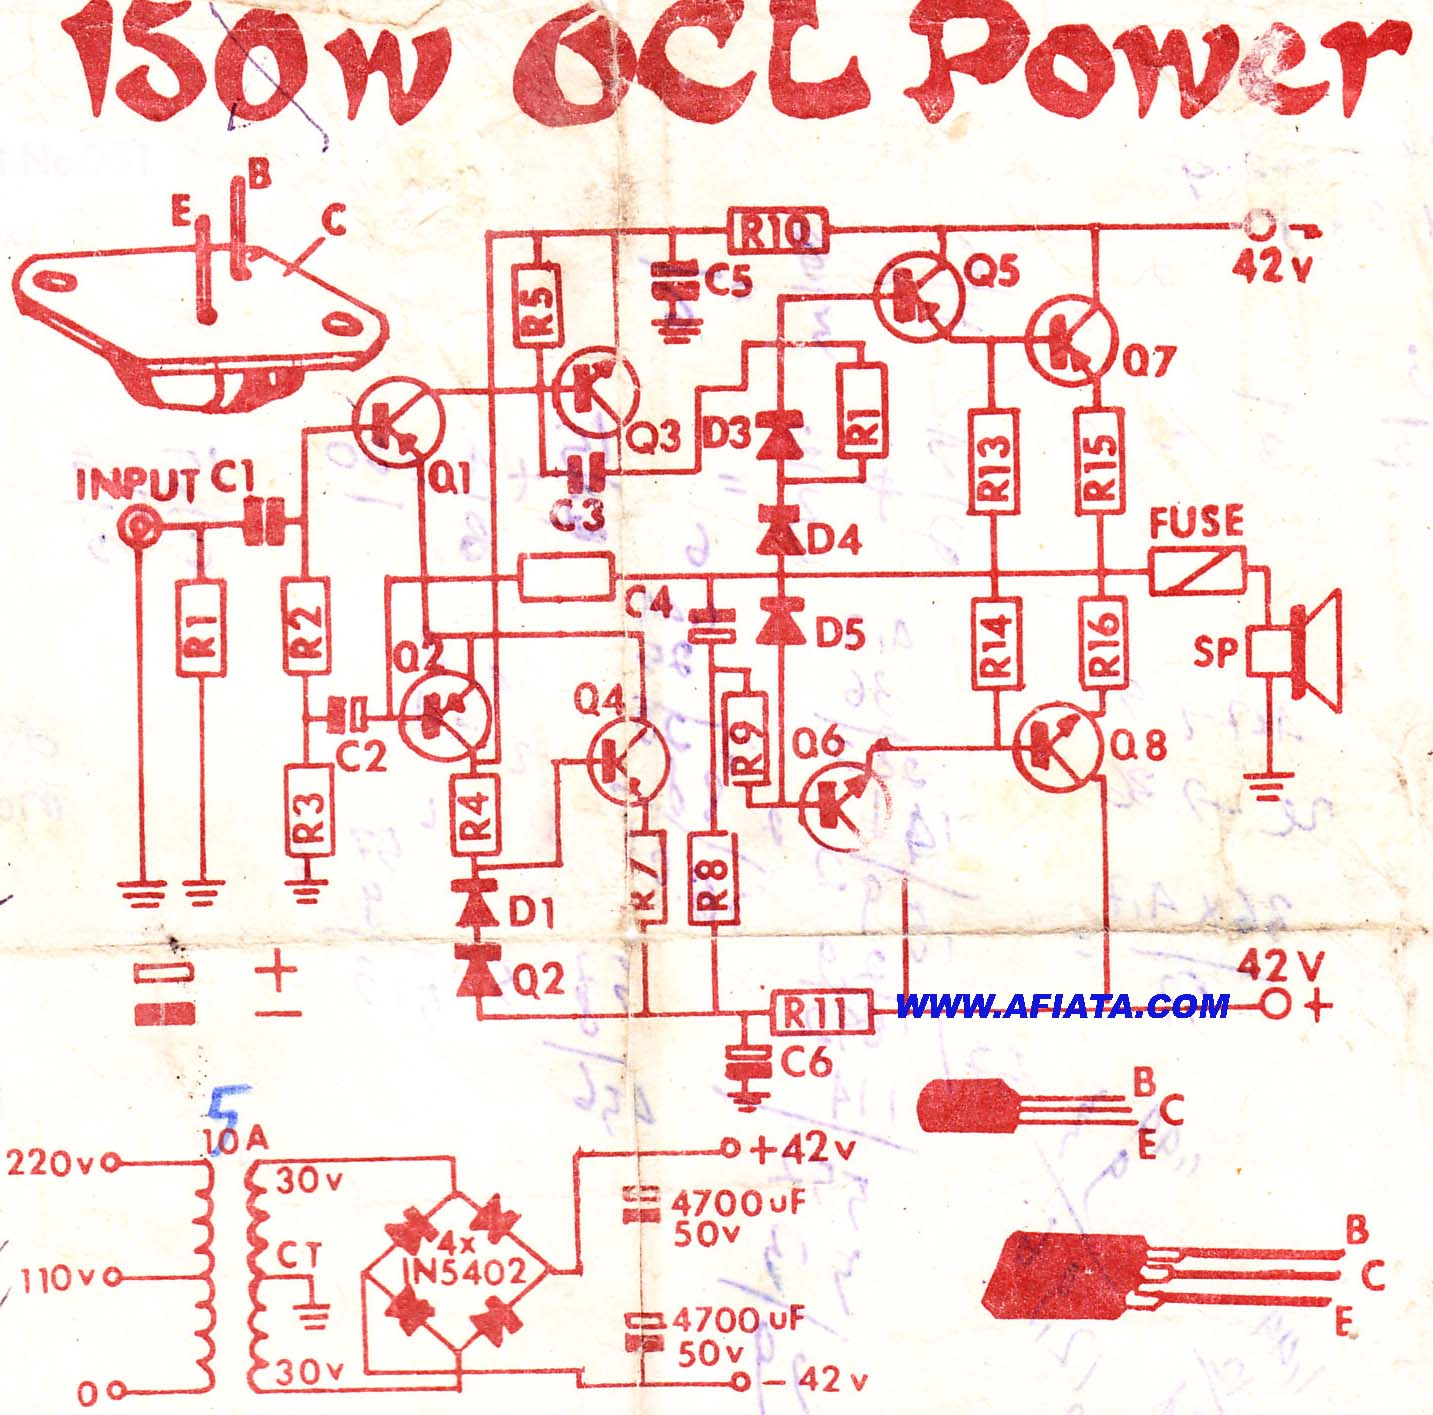 Insider 2n3055 Mj2955 Amplifier Circuit Http Wwweleccircuitcom Mcusystemcontroller12vdcmotorspeed Audio Using A564 D438 C1162